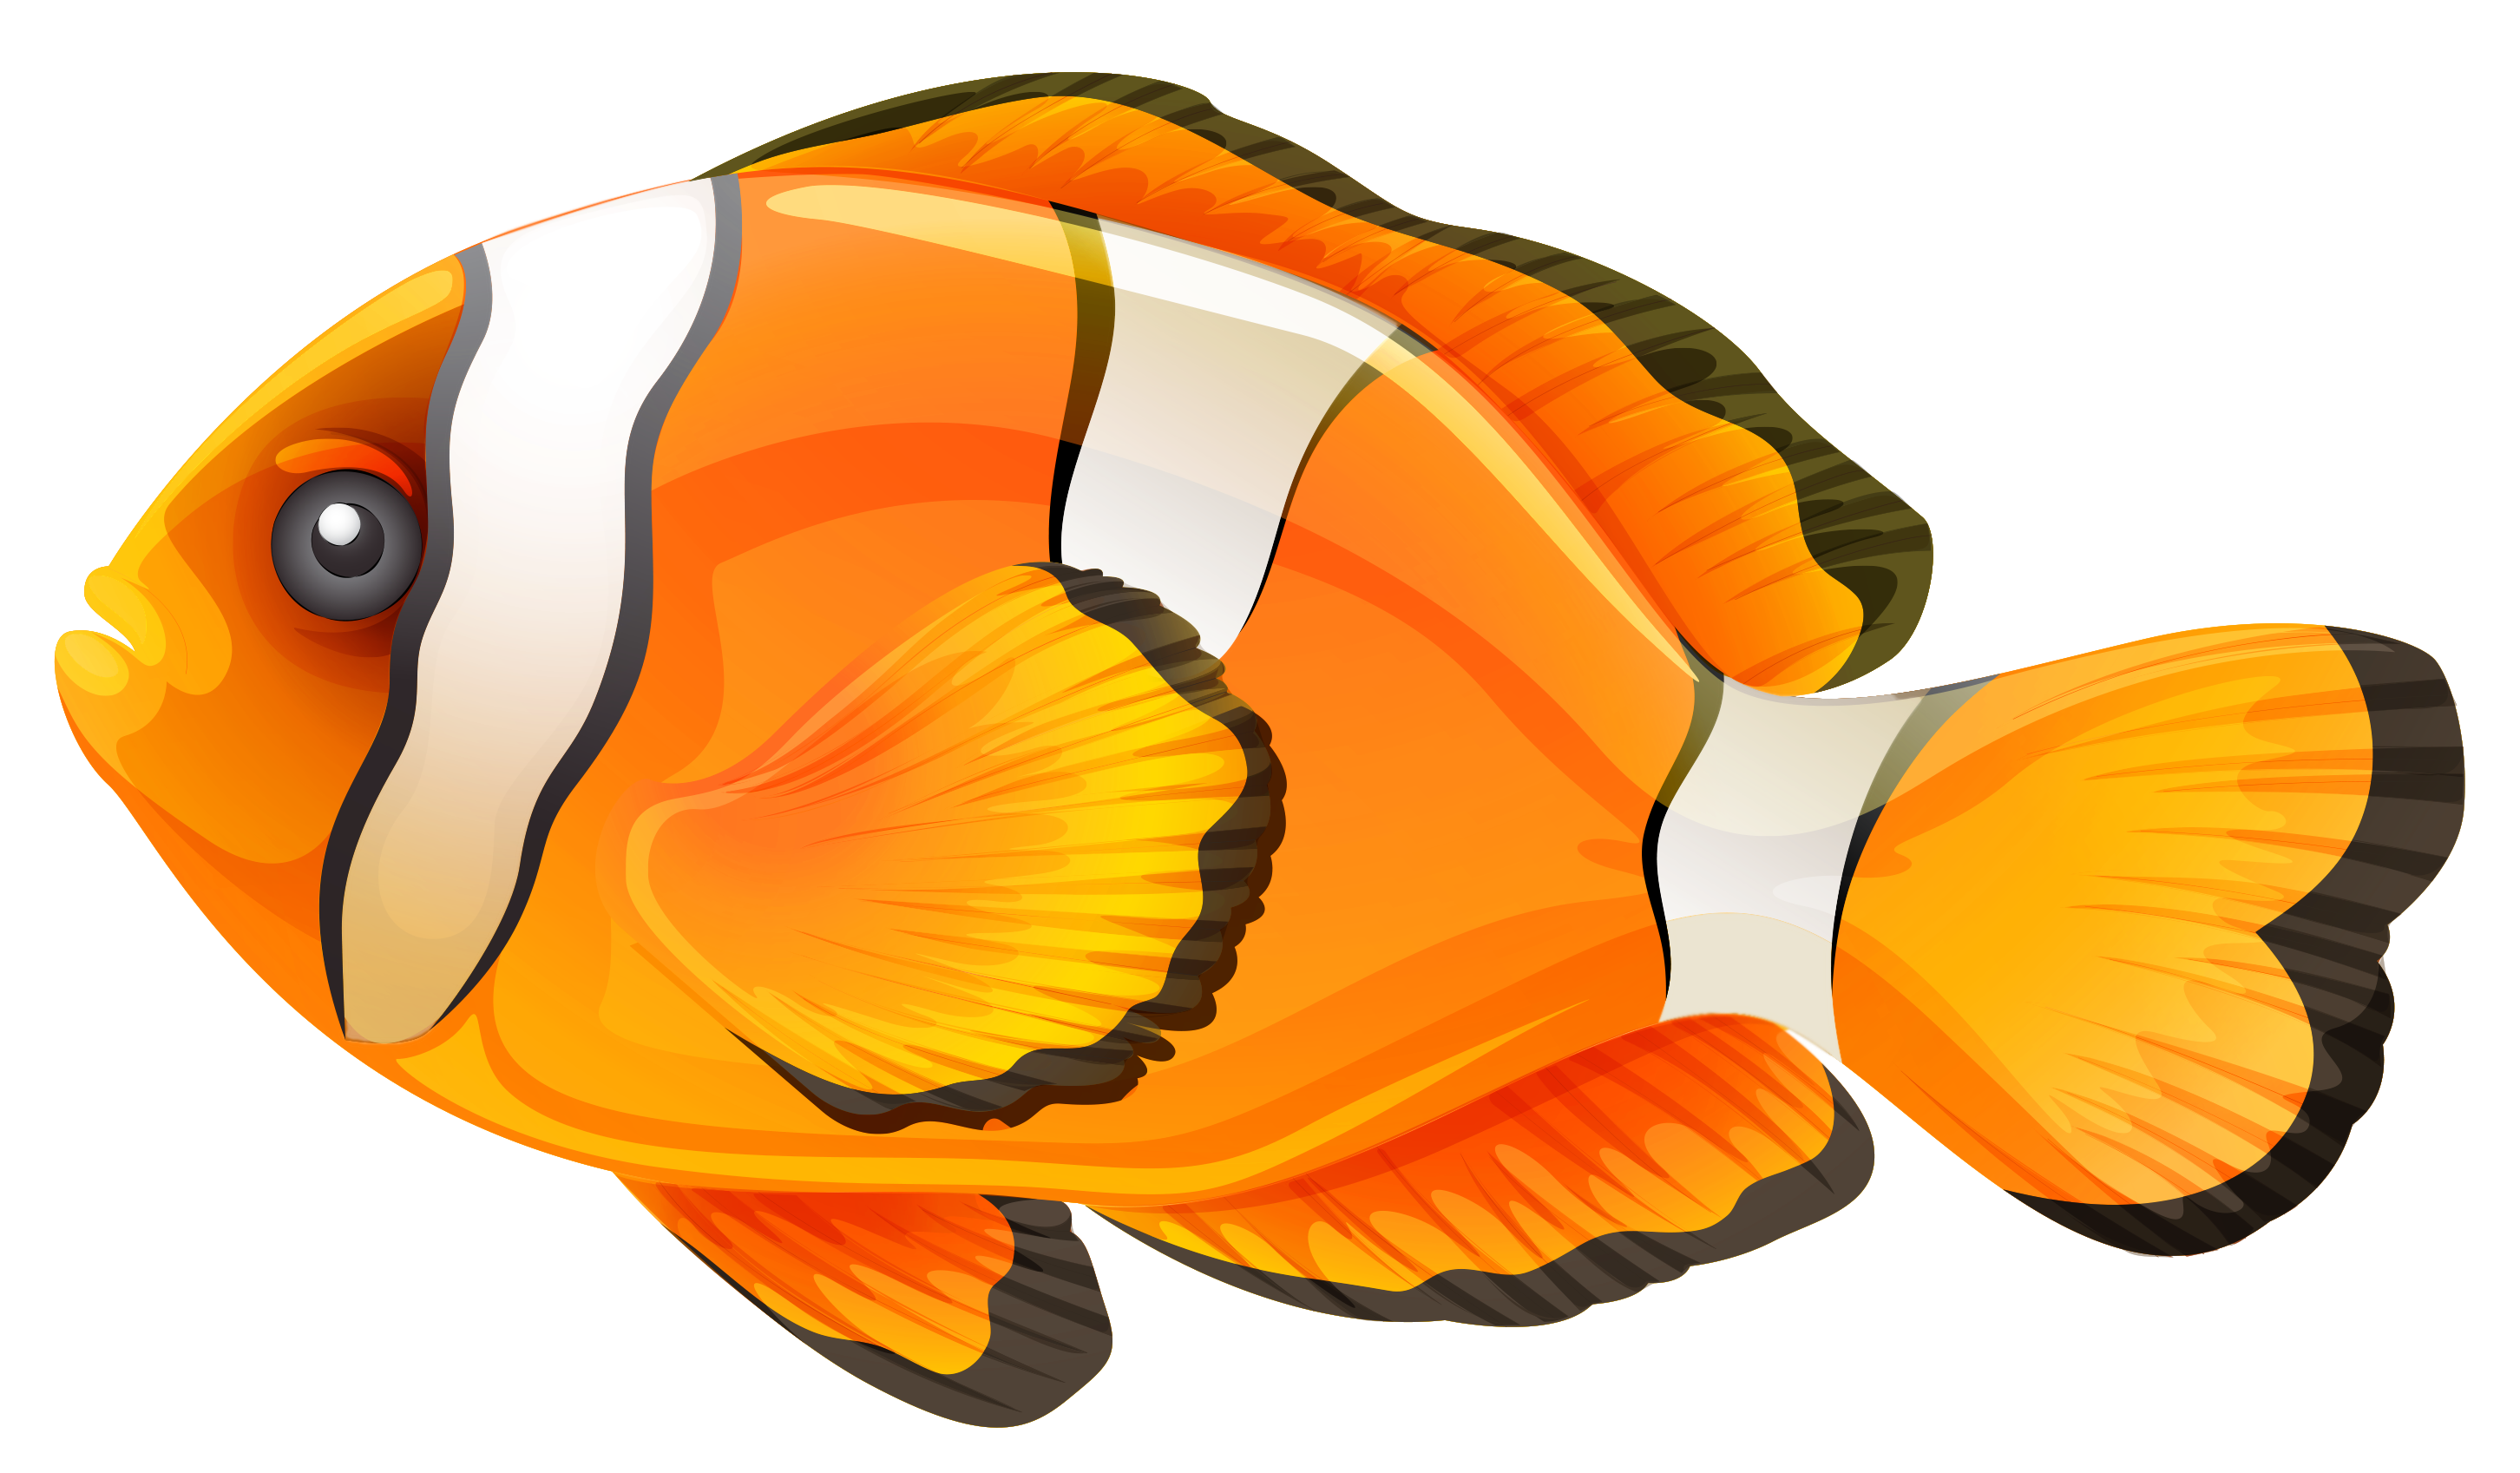 Clownfish png clipart best. Fish clip art transparent background svg transparent download